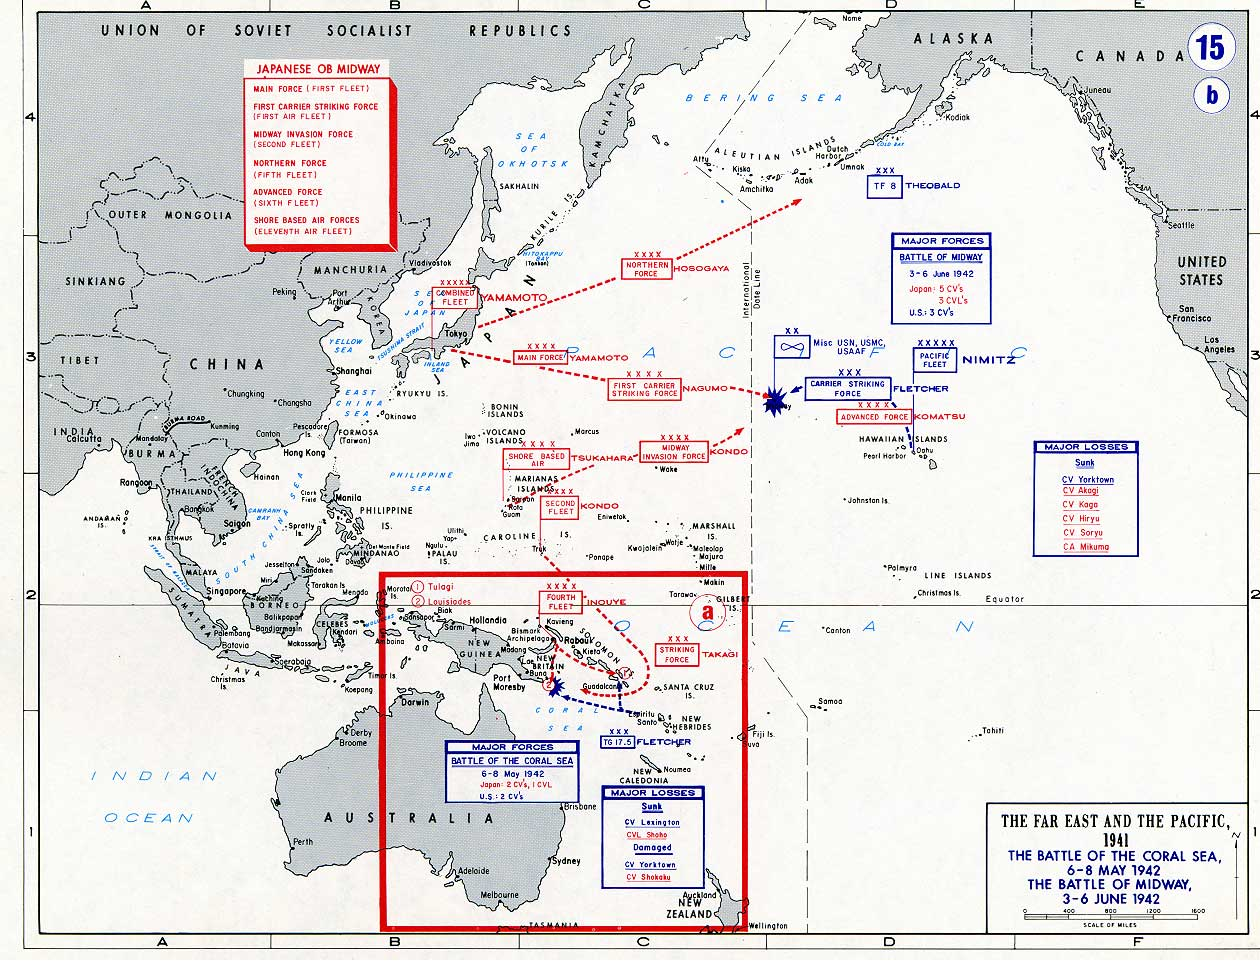 Battle map showing the area of the Far East and Pacific 1941 0C